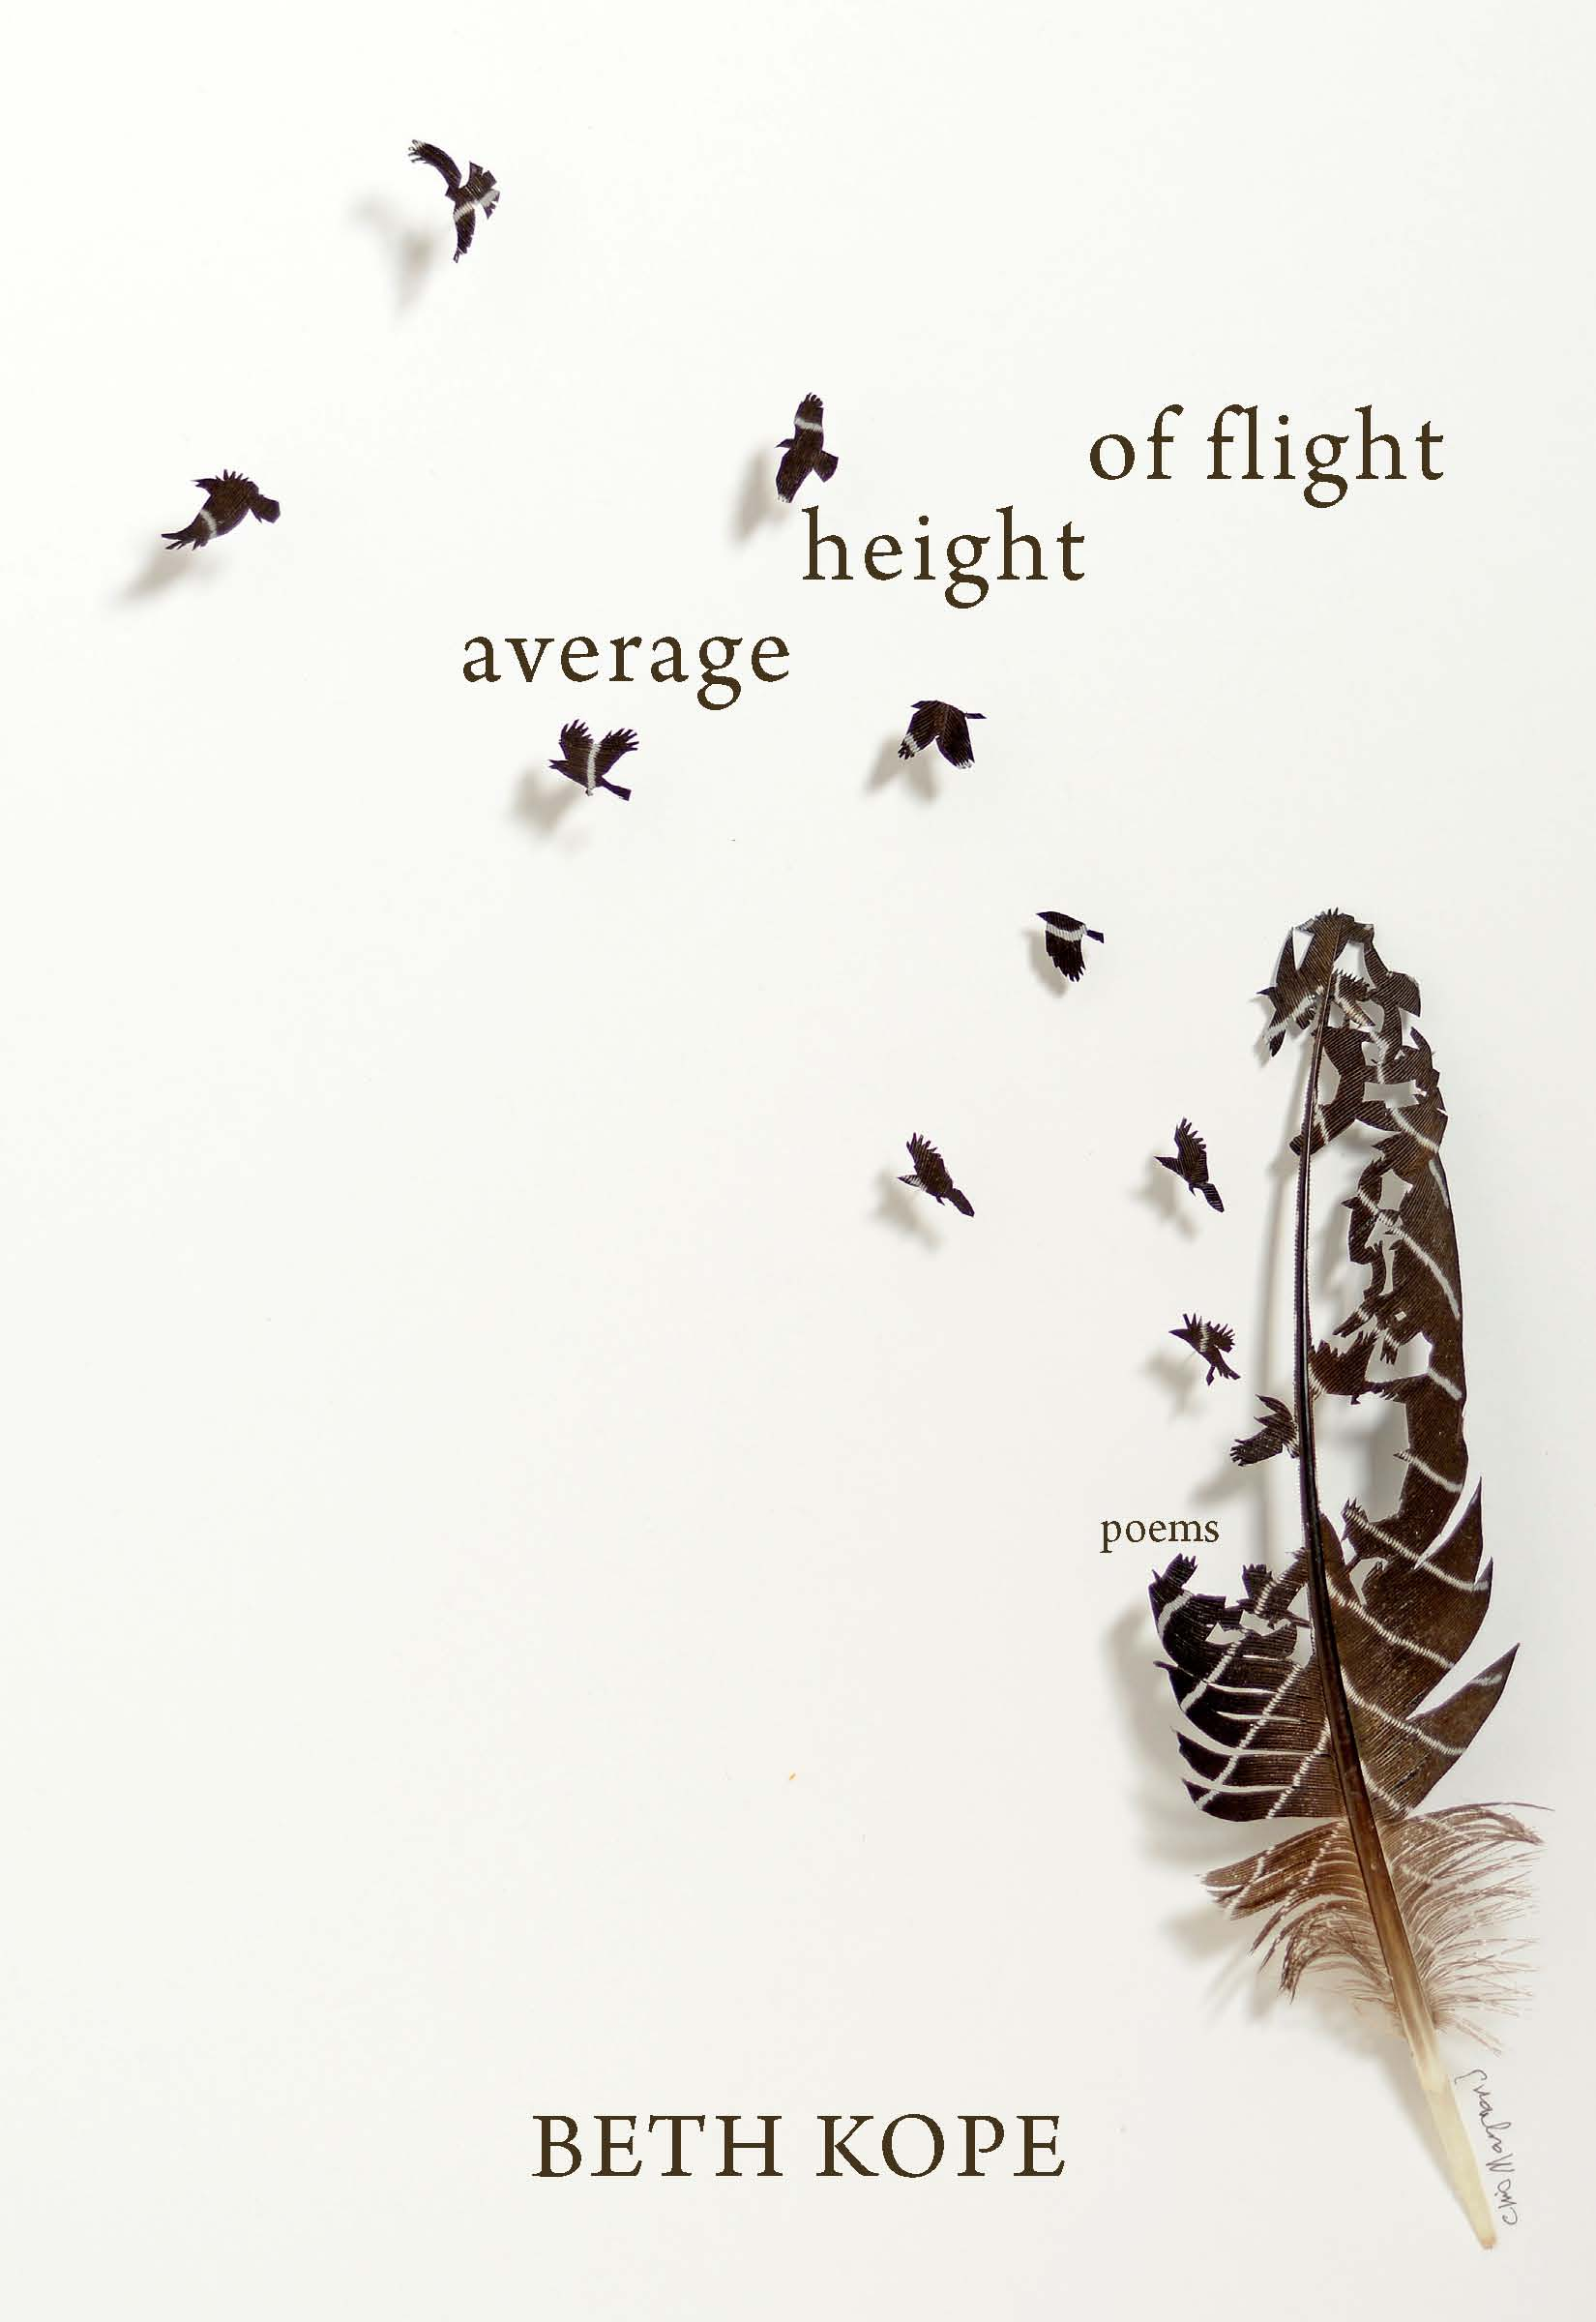 The Average Height of Flight